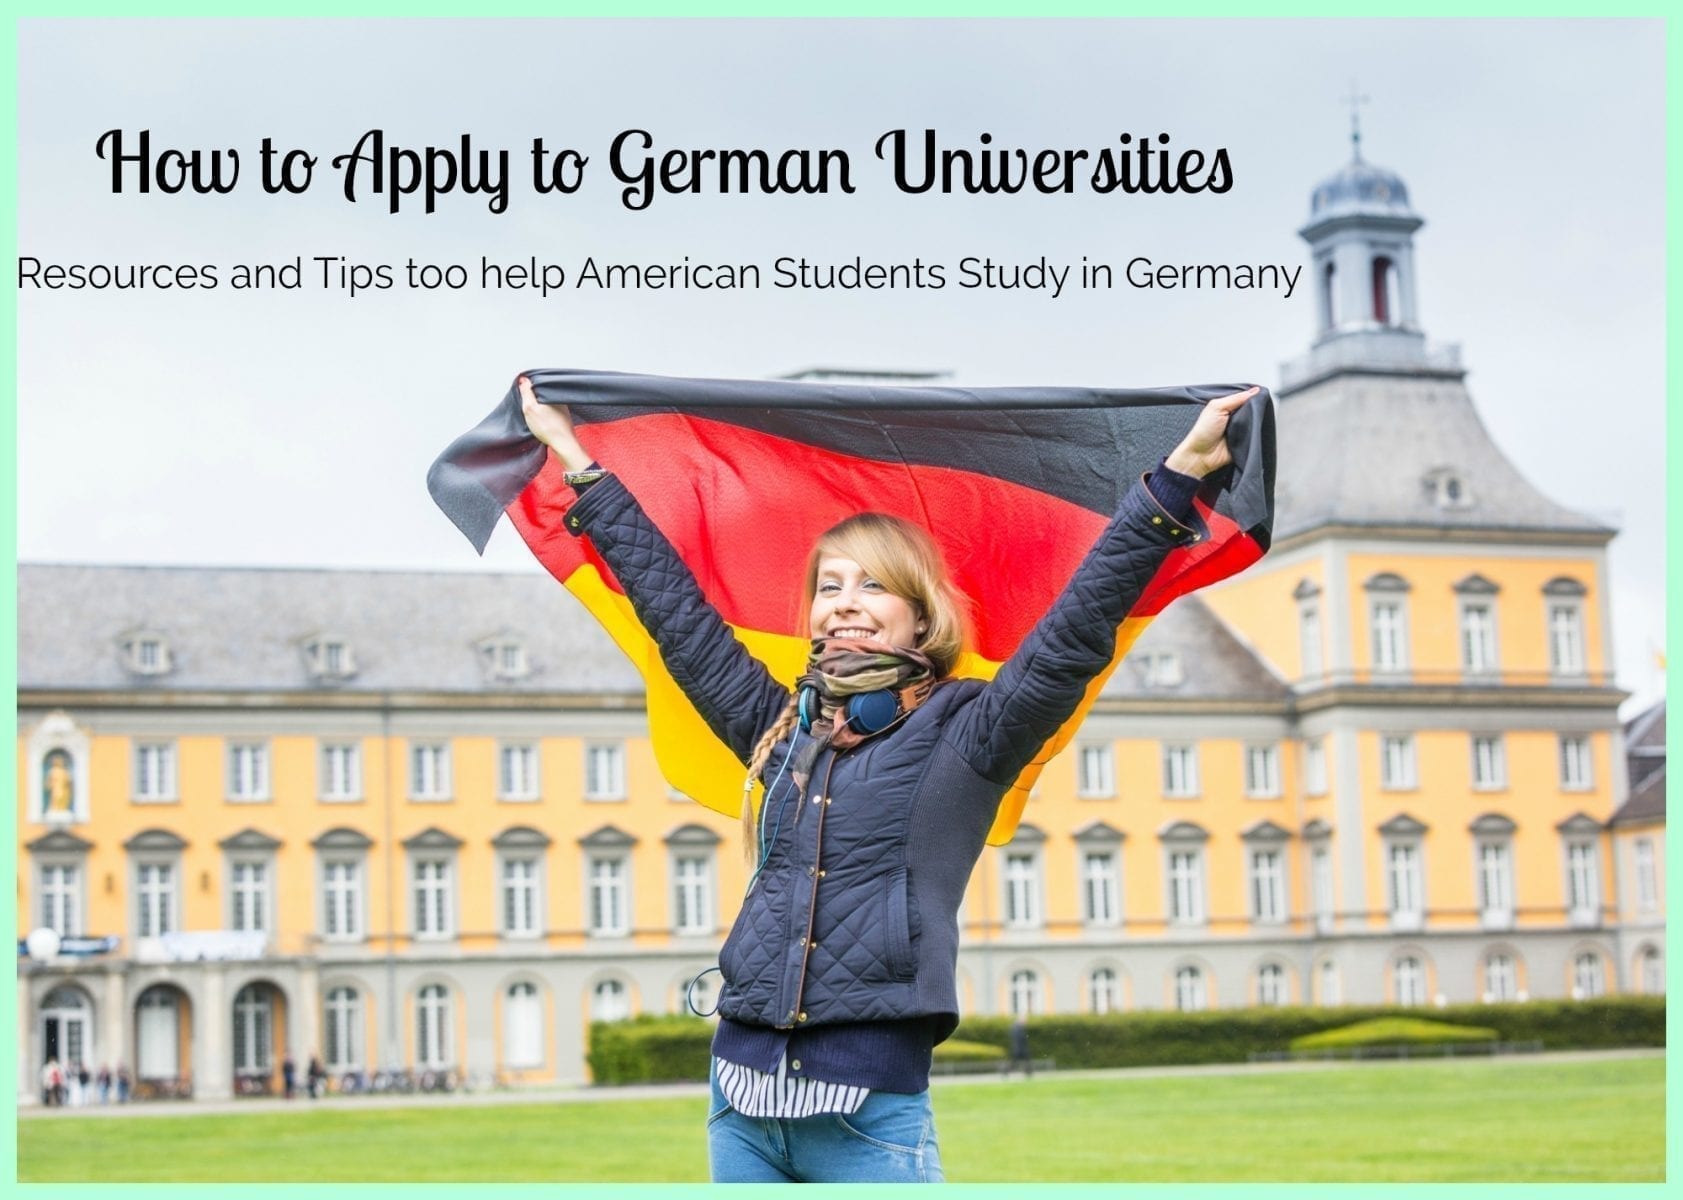 How to Apply to German Universities- Resources and Tips for a Successful Application